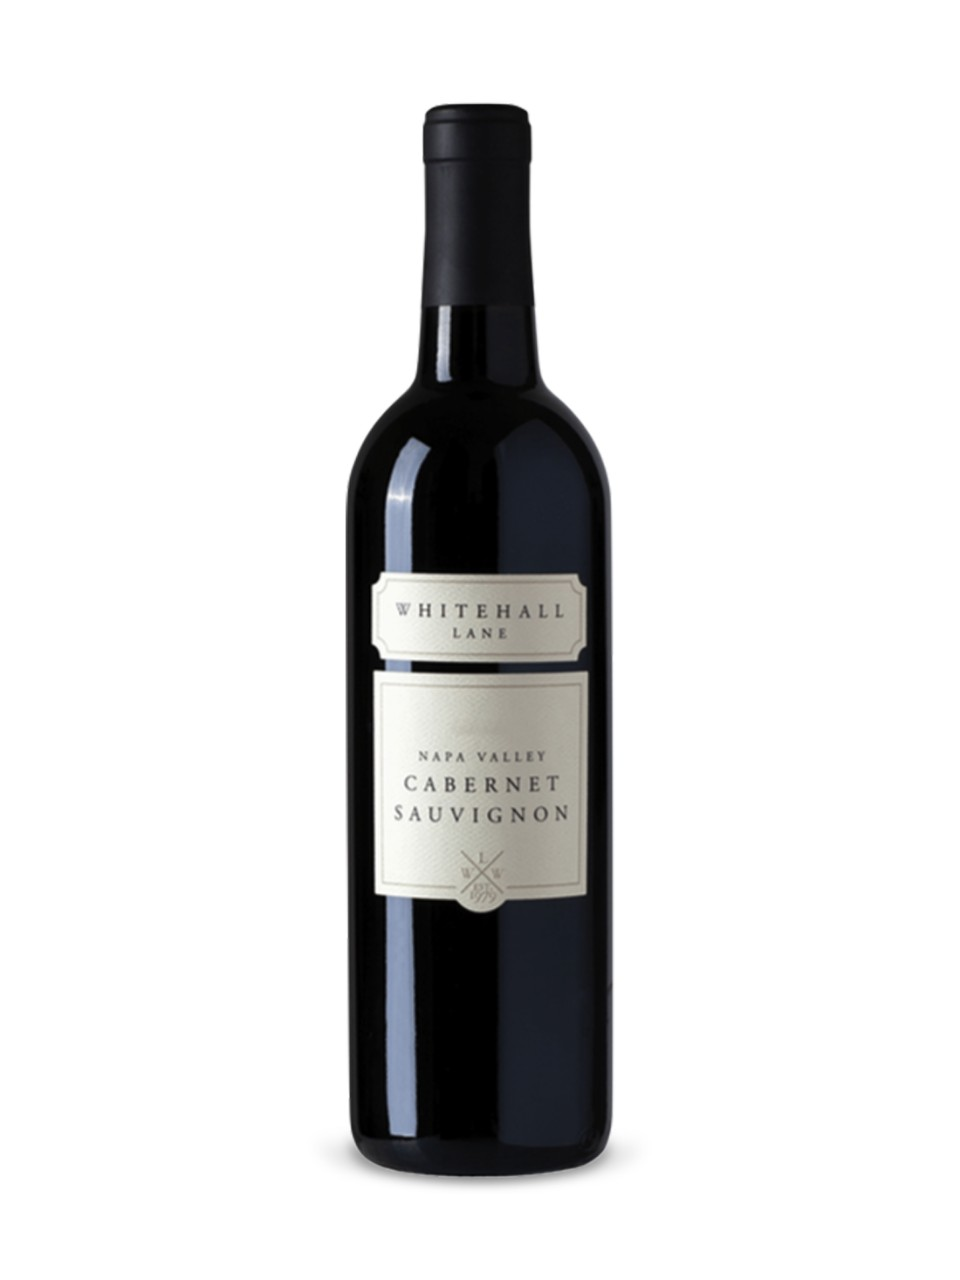 Whitehall Lane Cabernet Sauvignon 2016 from LCBO